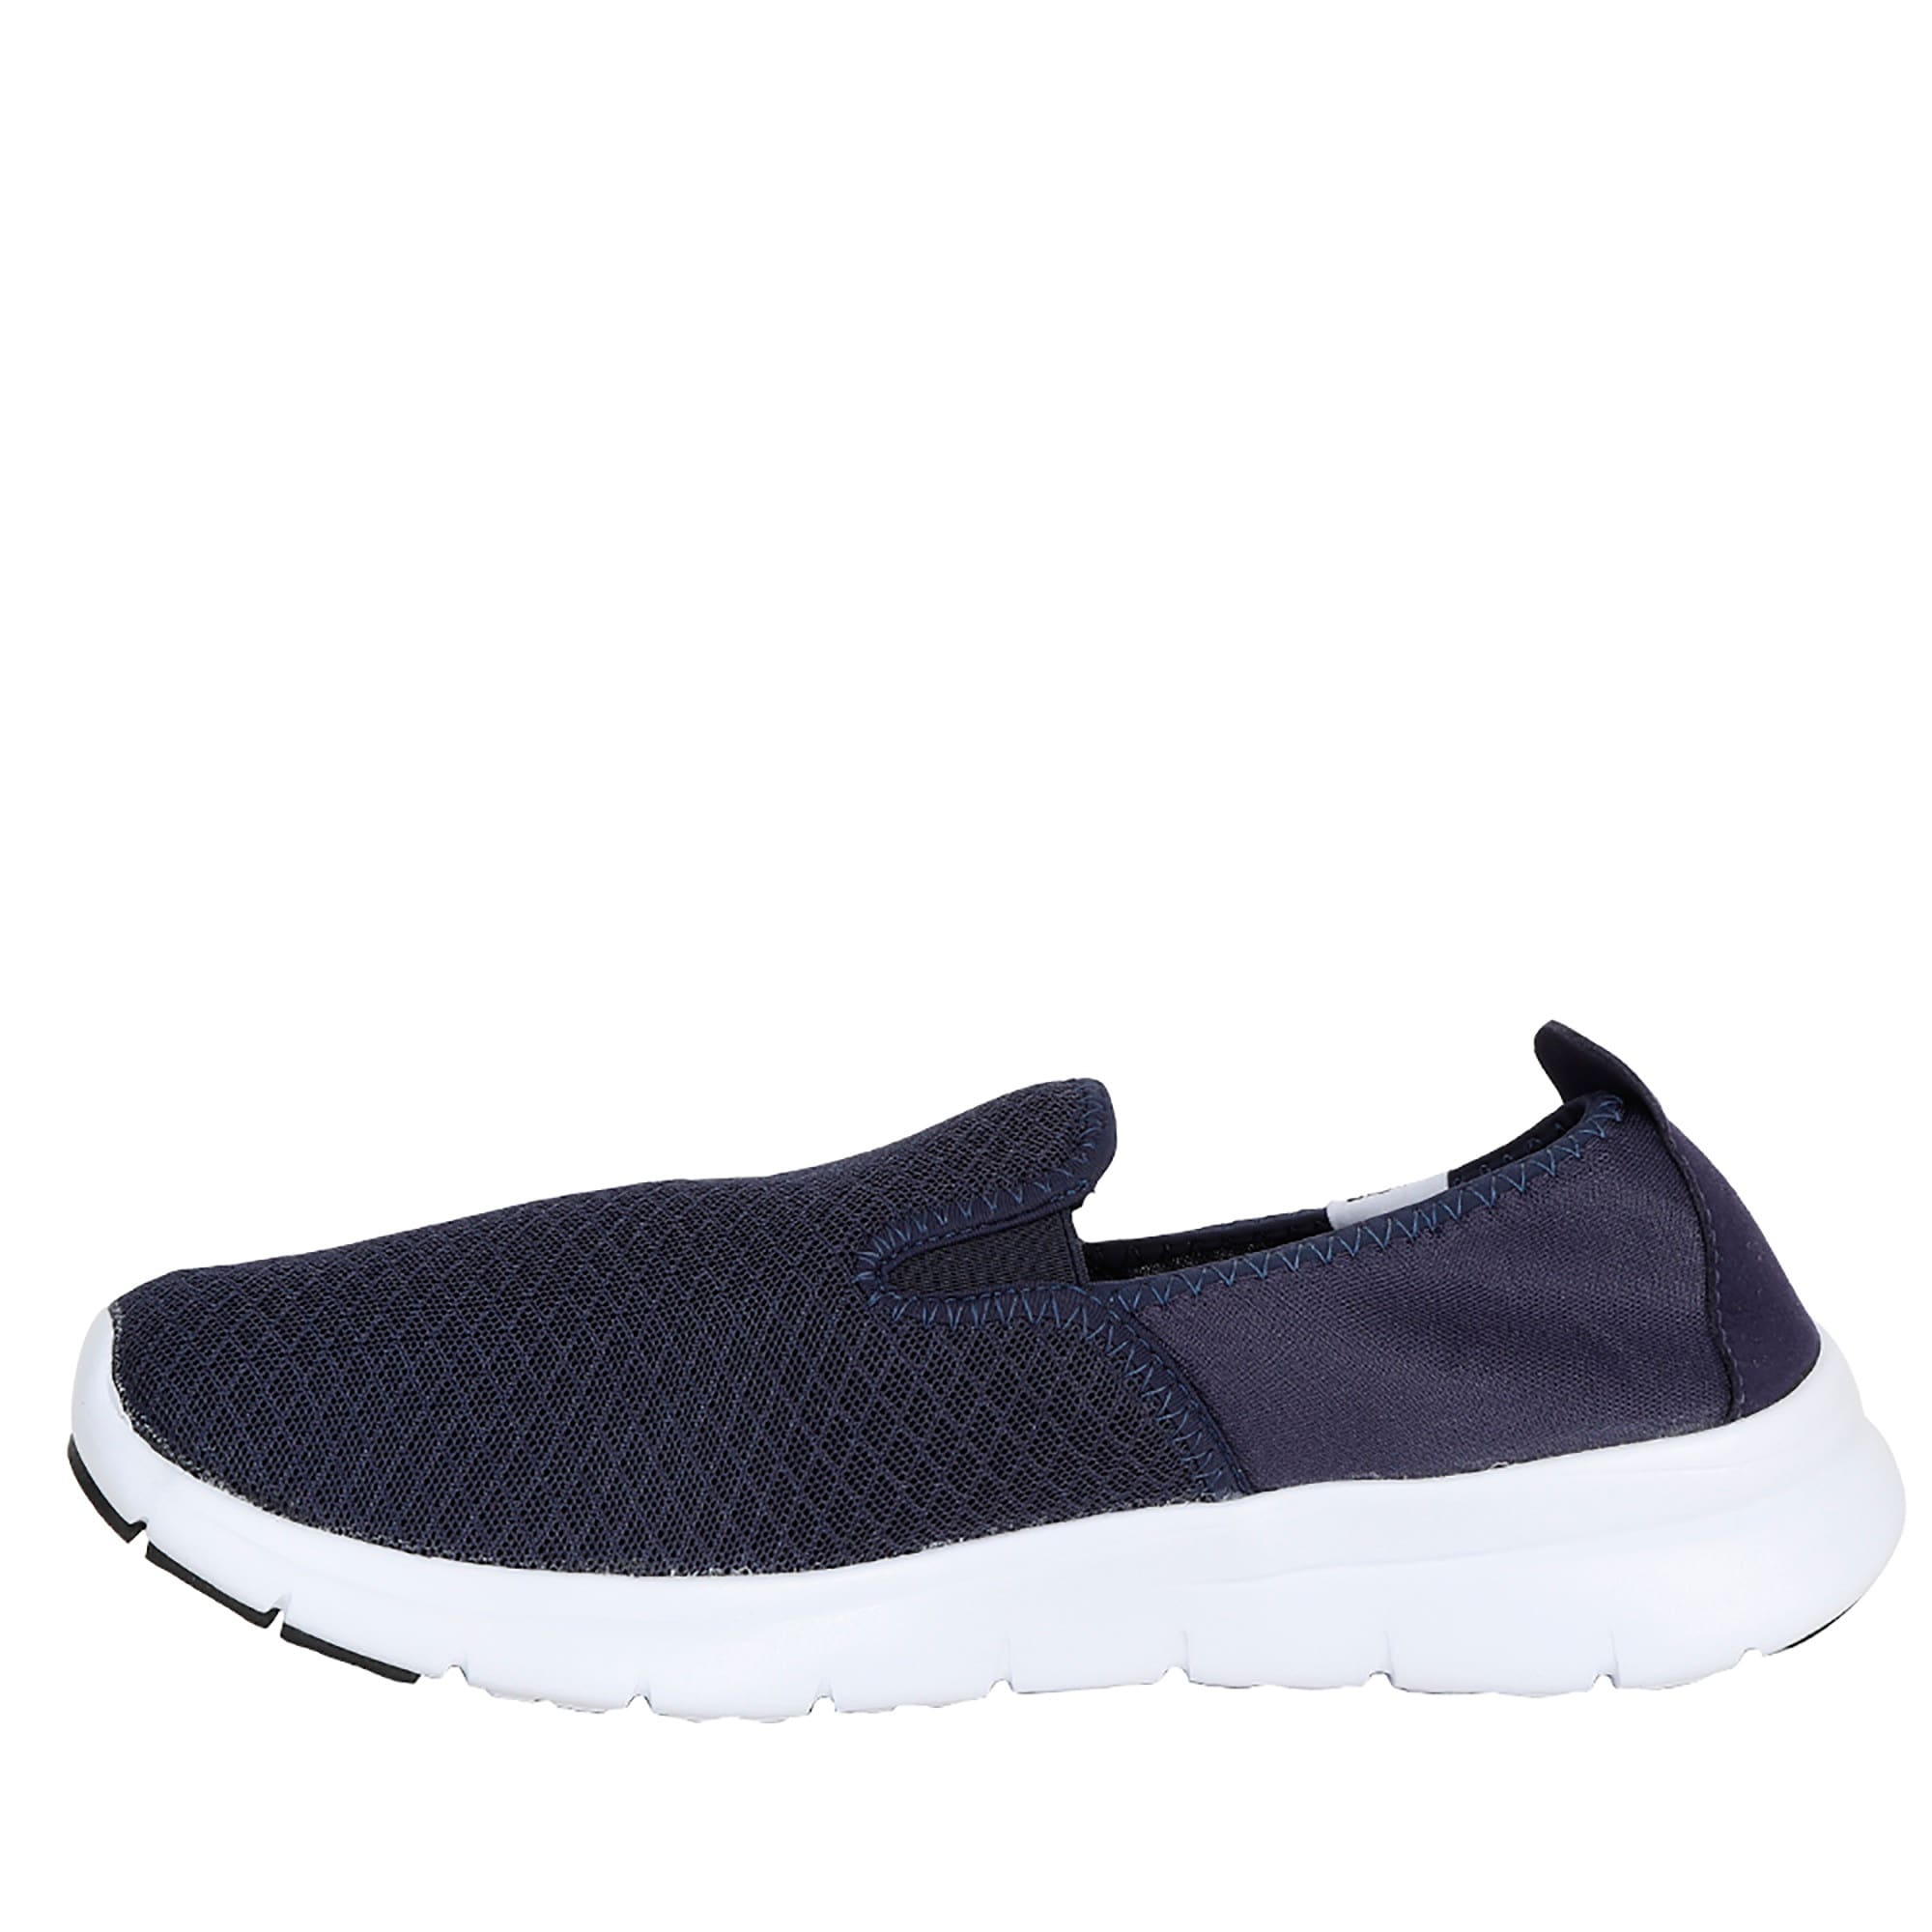 Thumbnail 1 of PUMA Flex Essential Slip On IDP Peacoat-, Peacoat-Peacoat, medium-IND